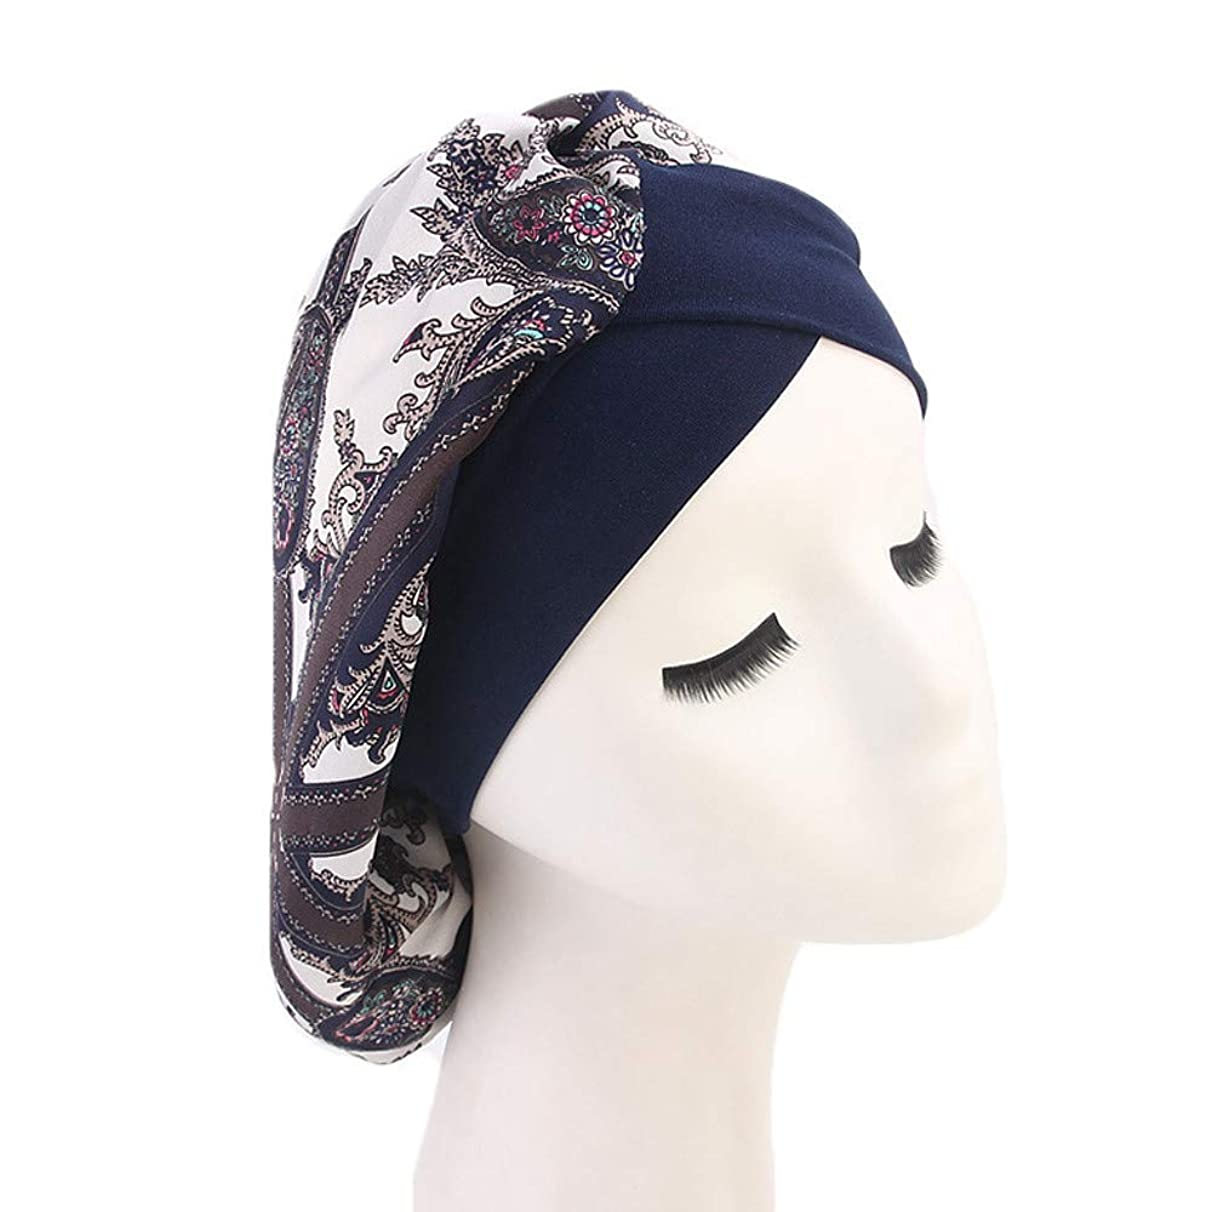 Muranba Women Muslim Hat Retro Turban Hat Cap